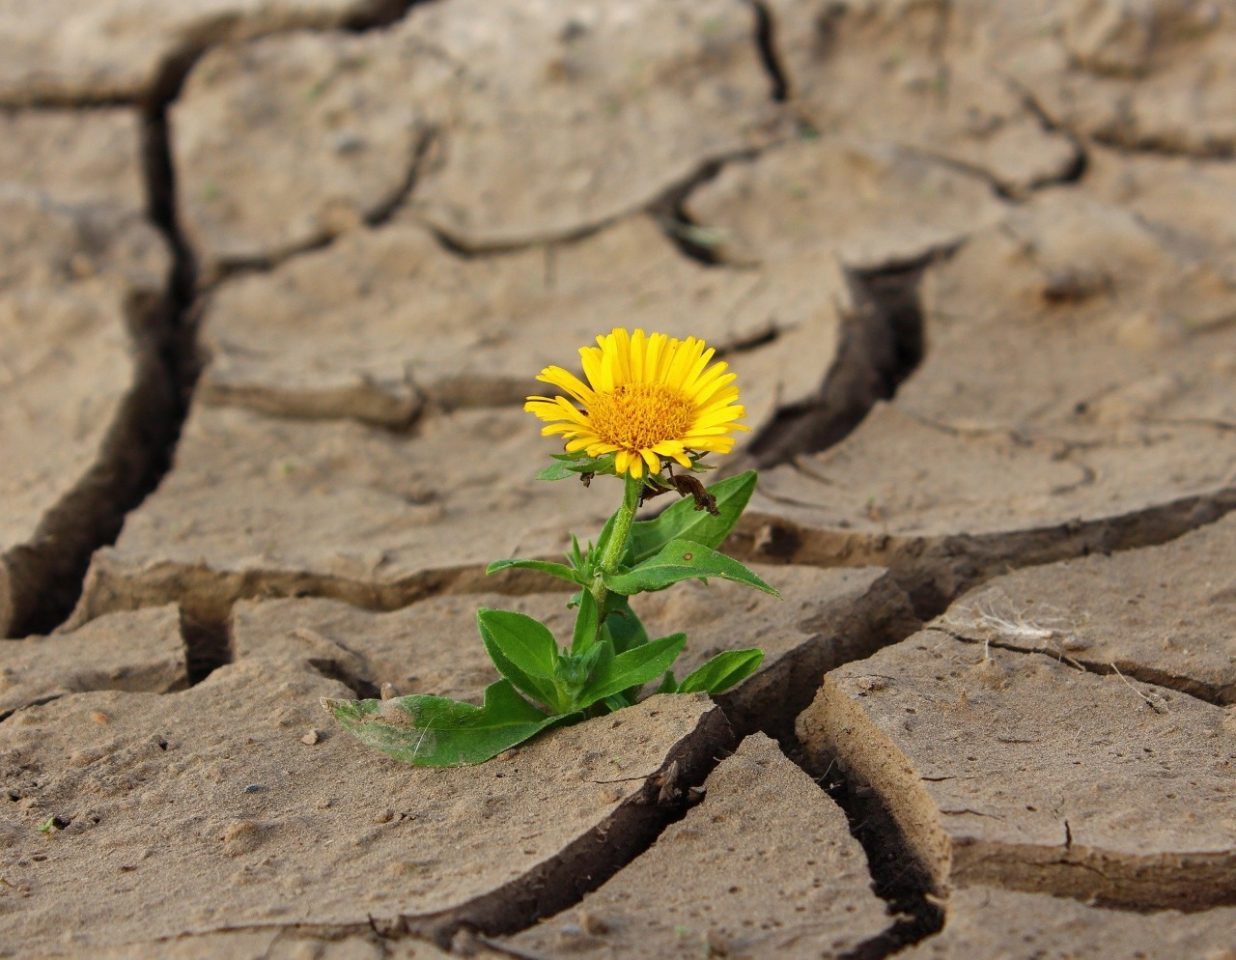 flower blooming in arid land- live life to fullest